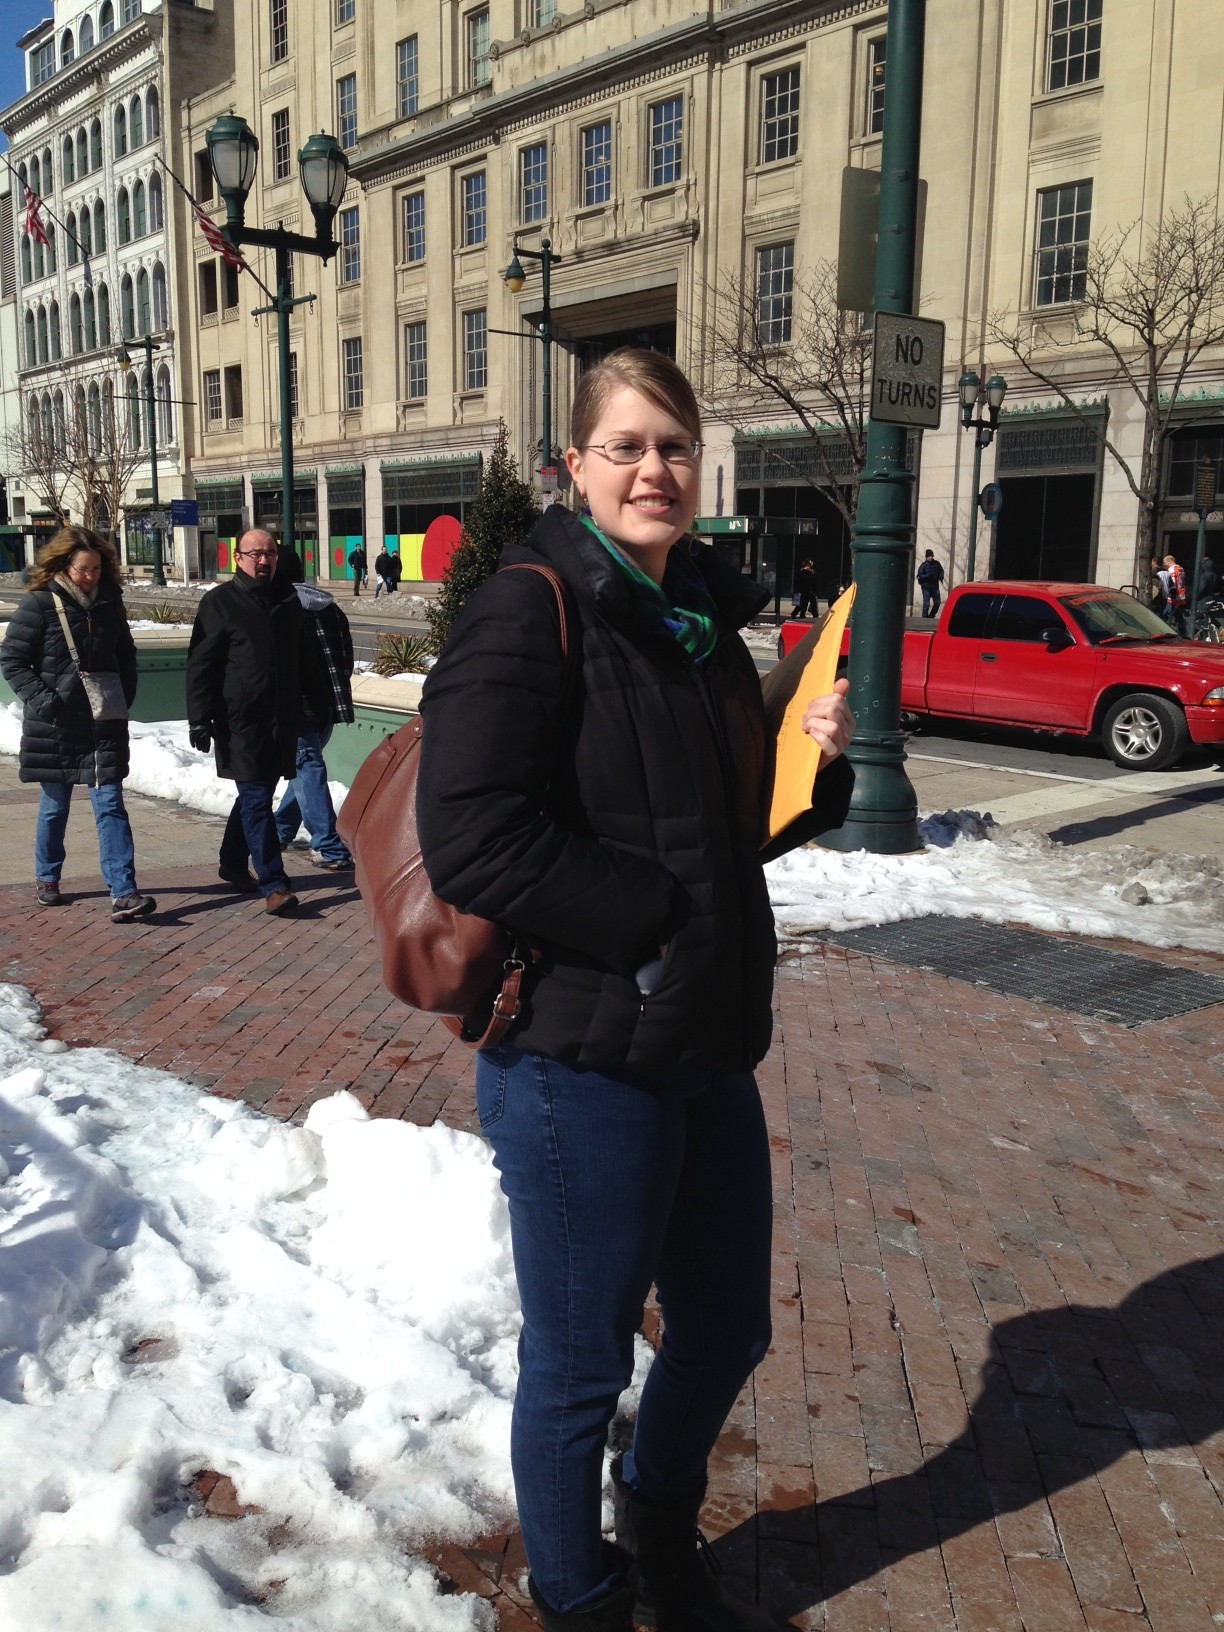 Lori Jensen, a former Philadelphia resident, thinks the proposed location at 8th and Market streets is no good for the city.